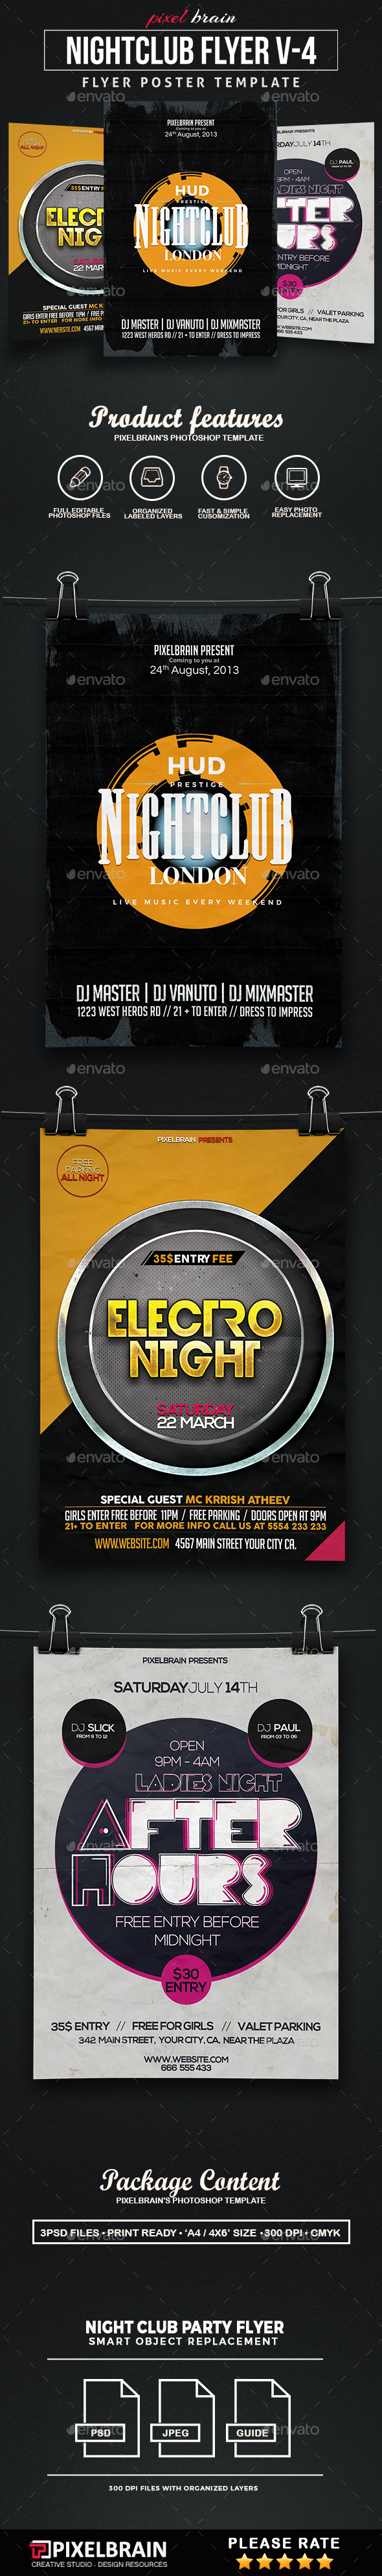 Night Club Party Flyer Template Bundle Vol - 04 - Clubs & Parties Events